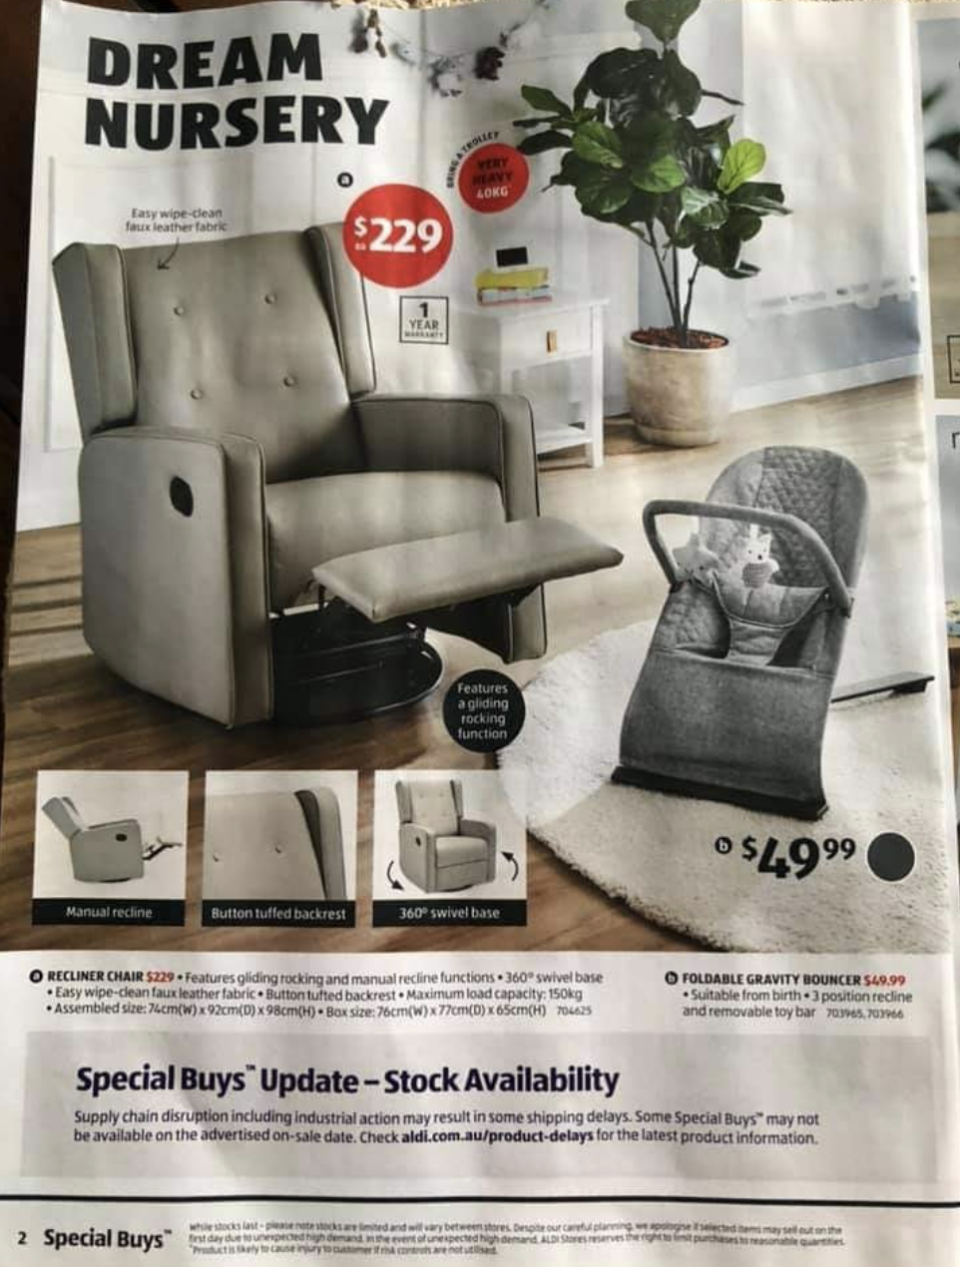 An Aldi advertisement for the chair.